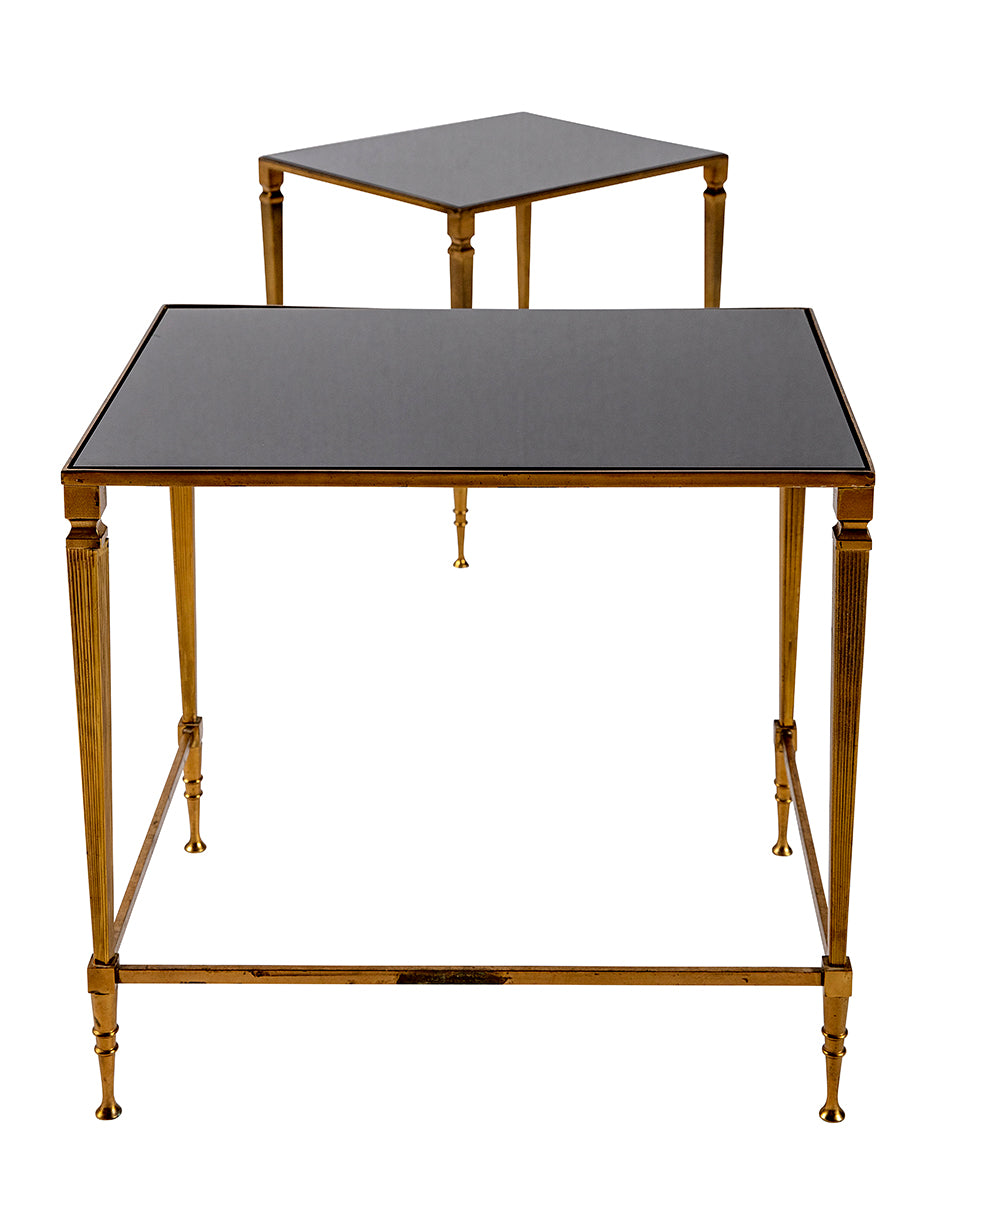 Ensemble de tables d'appoint style Empire